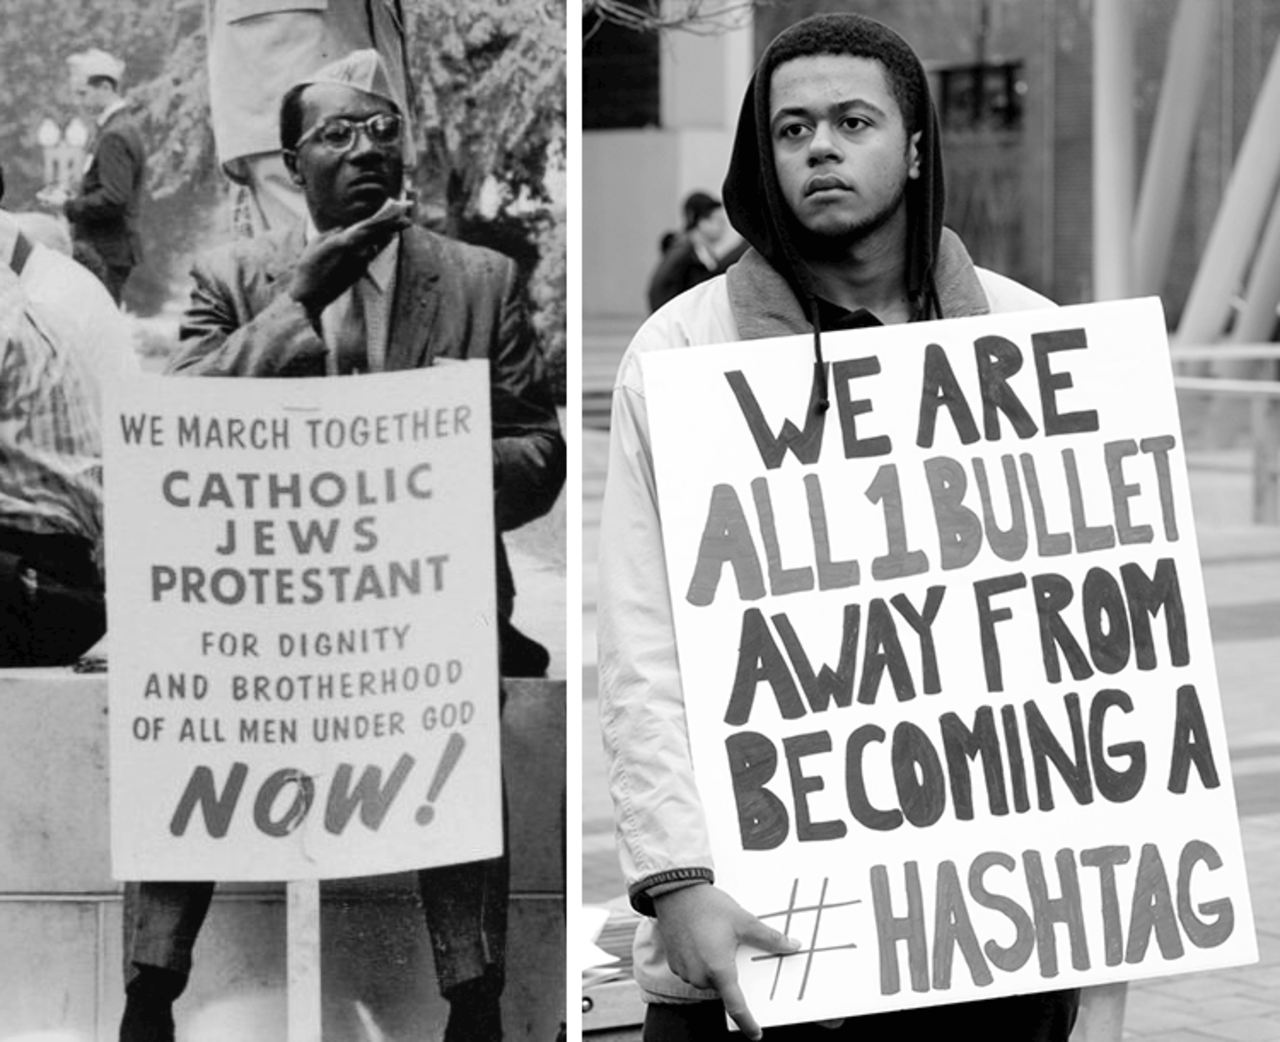 Left: a civil rights activist in the Selma-to-Montgomery March, 1965 (Photo by Peter Pettus/Library of Congress). Right: a civil rights activist in Silver Spring, Maryland, 2014 (Photo by Stephen Melkisethian, CC BY-NC-ND 2.0)